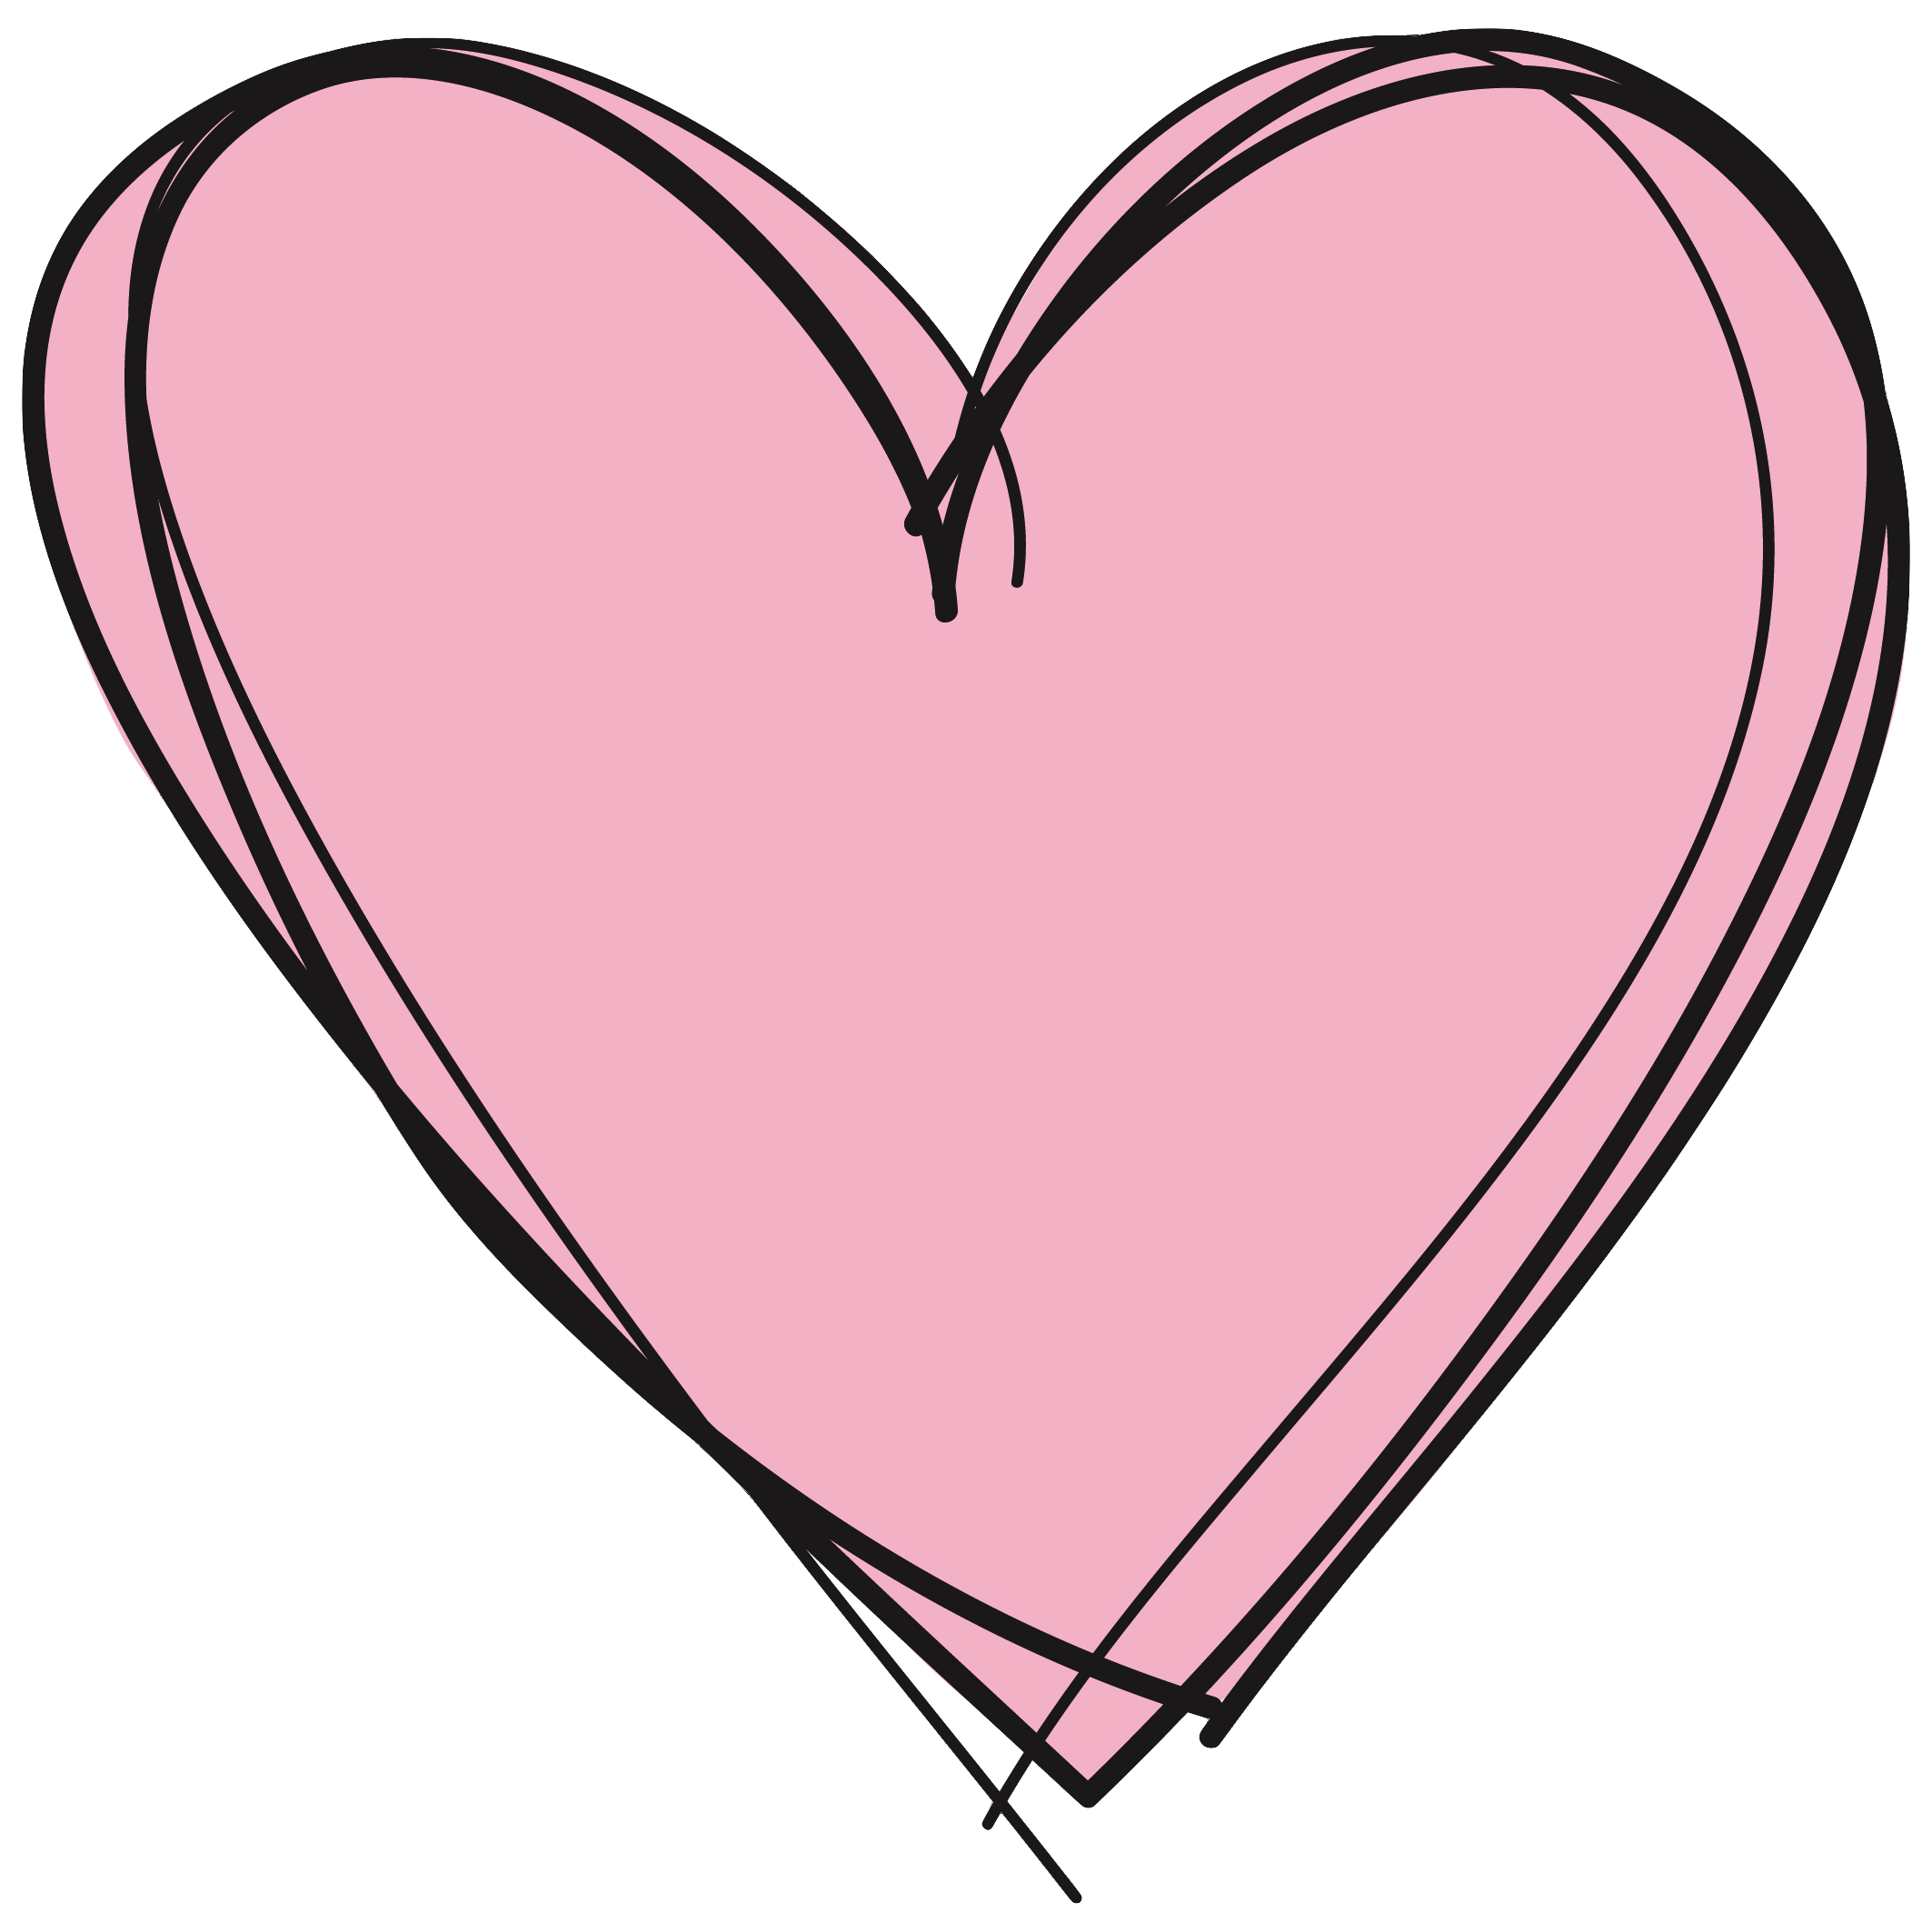 Pink Heart Png image #38777